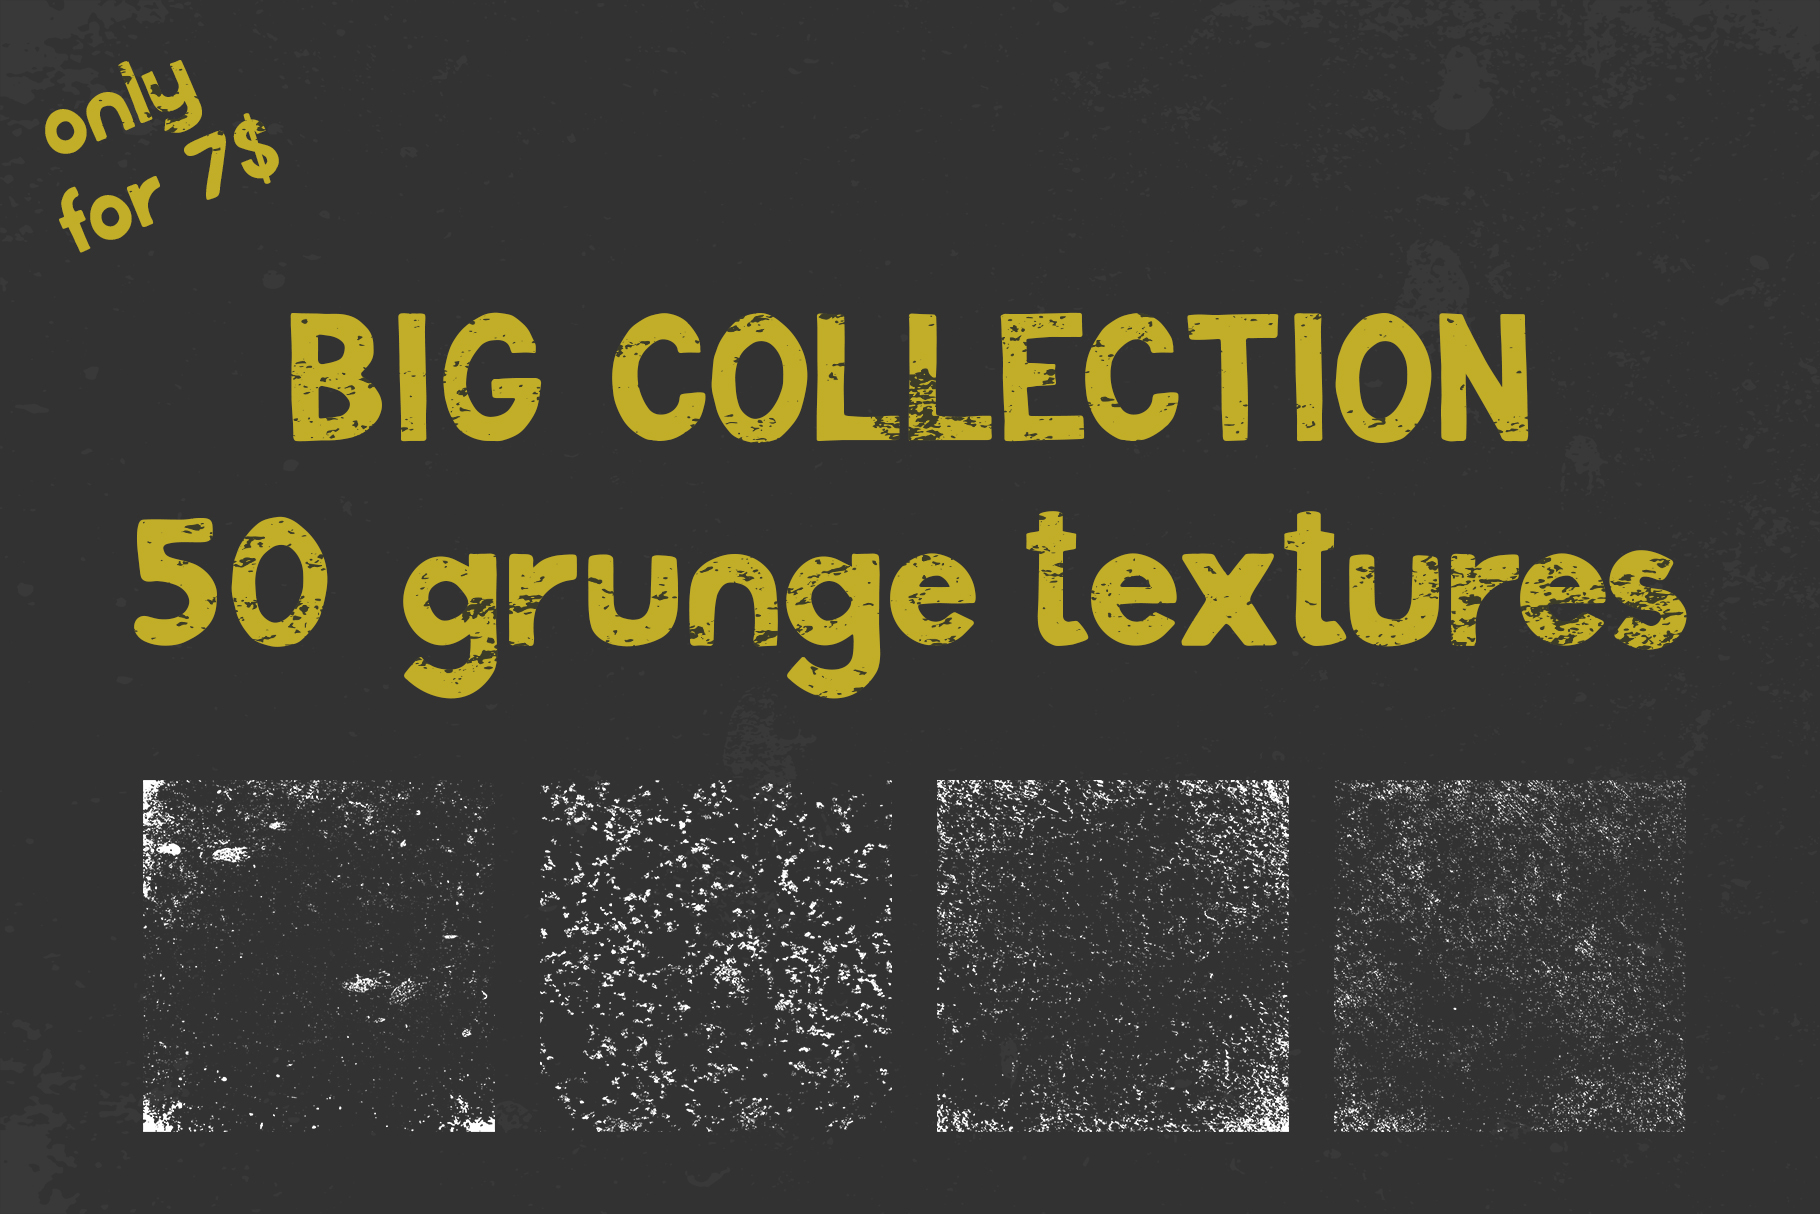 Big collection of grunge textures example image 1